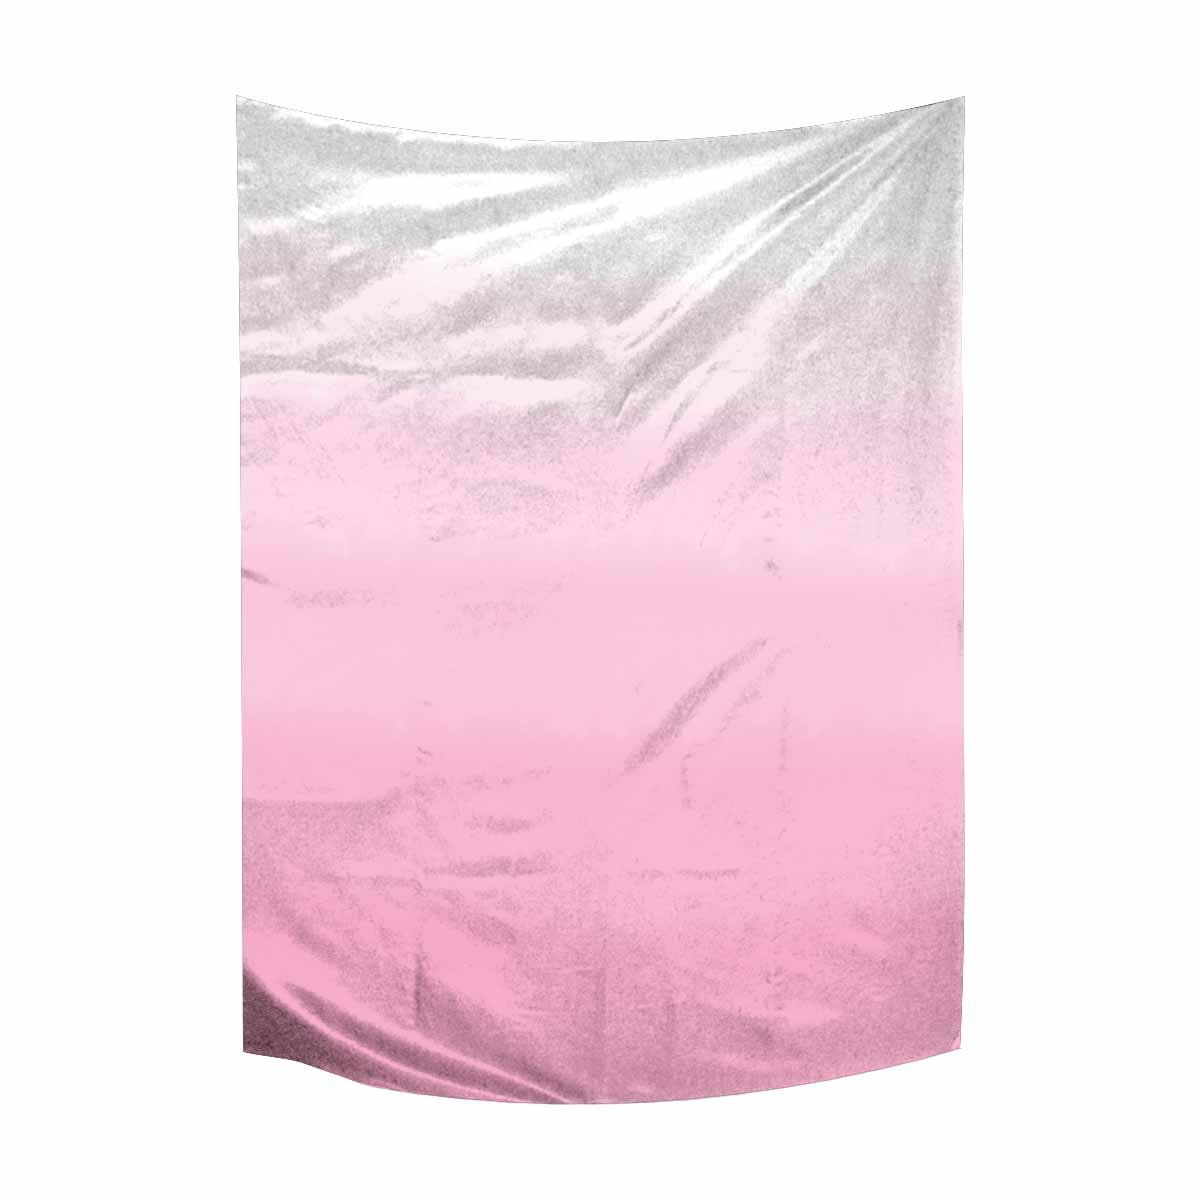 InterestPrint Abstract Pink Ombre Gradient Watercolor Tapestry Wall Hanging Hippy Tapestries Beach Throw College Dorm Decor, 60W X 80L inch